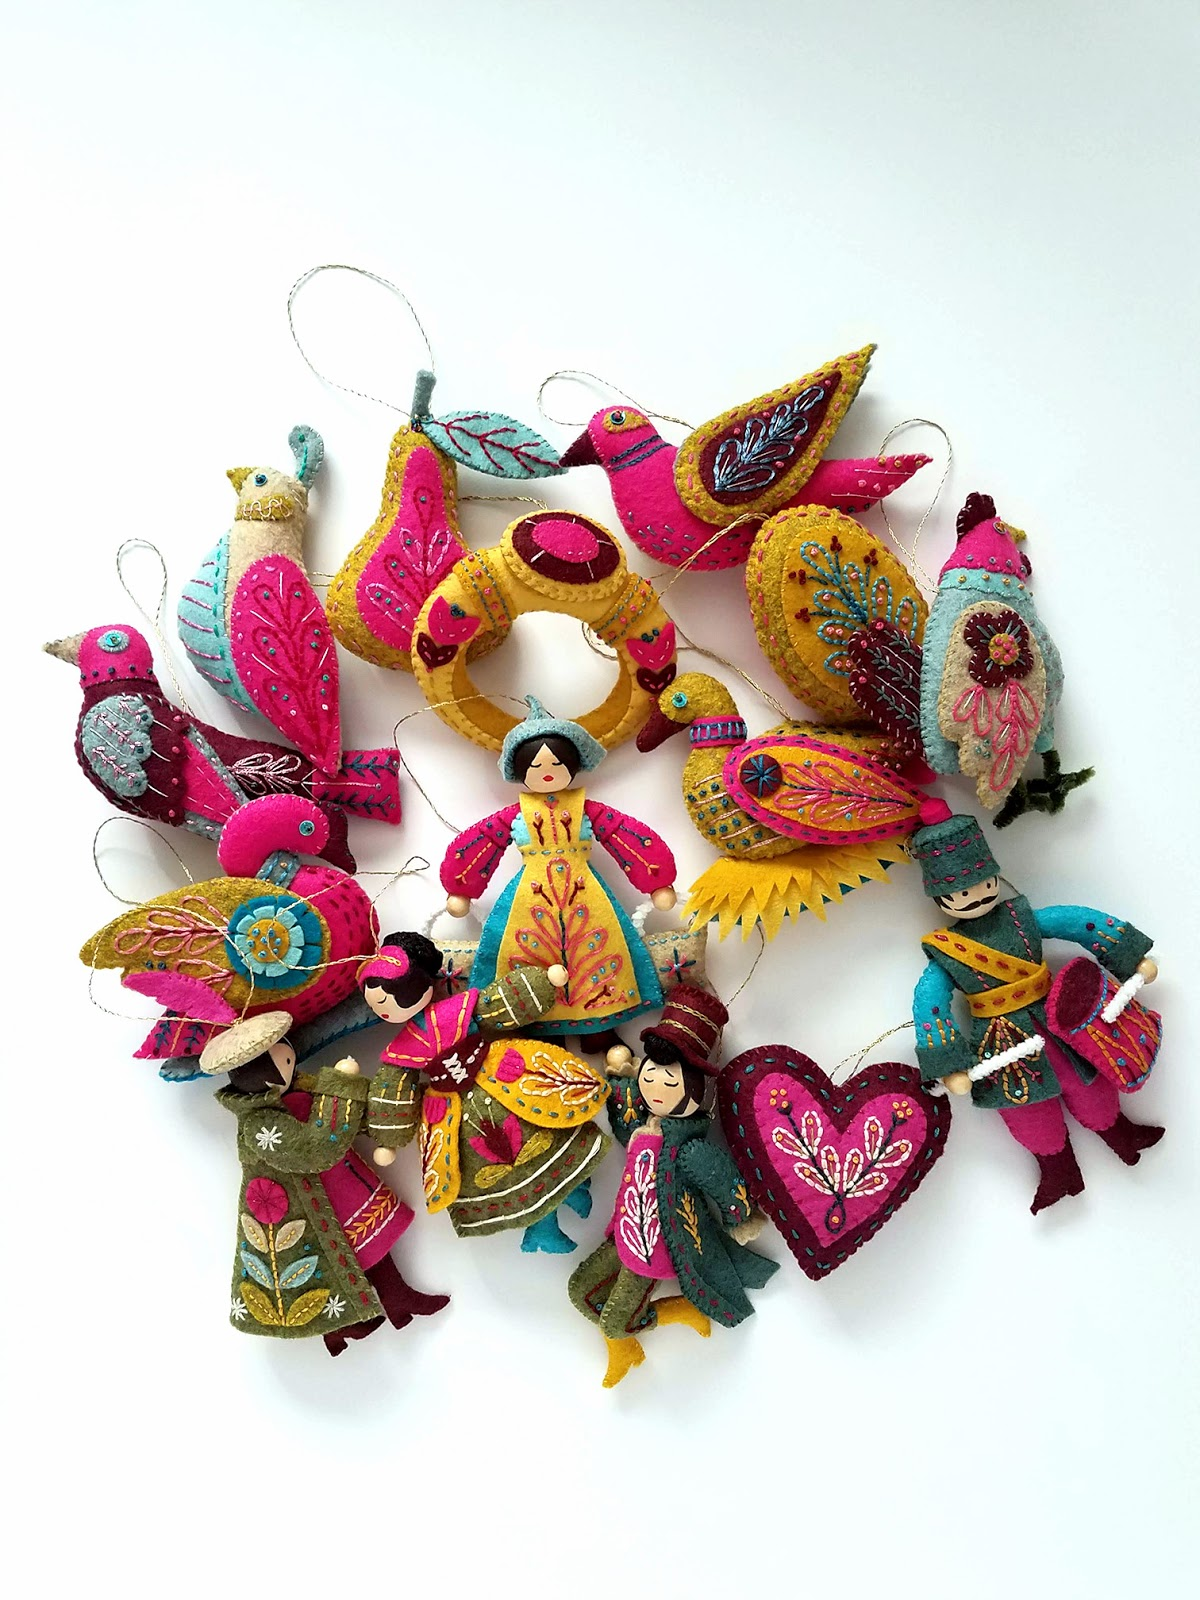 Finished 12 Days of Christmas ornaments - pattern by Mmmcrafts, as stitched by floresita and shared on Feeling Stitchy